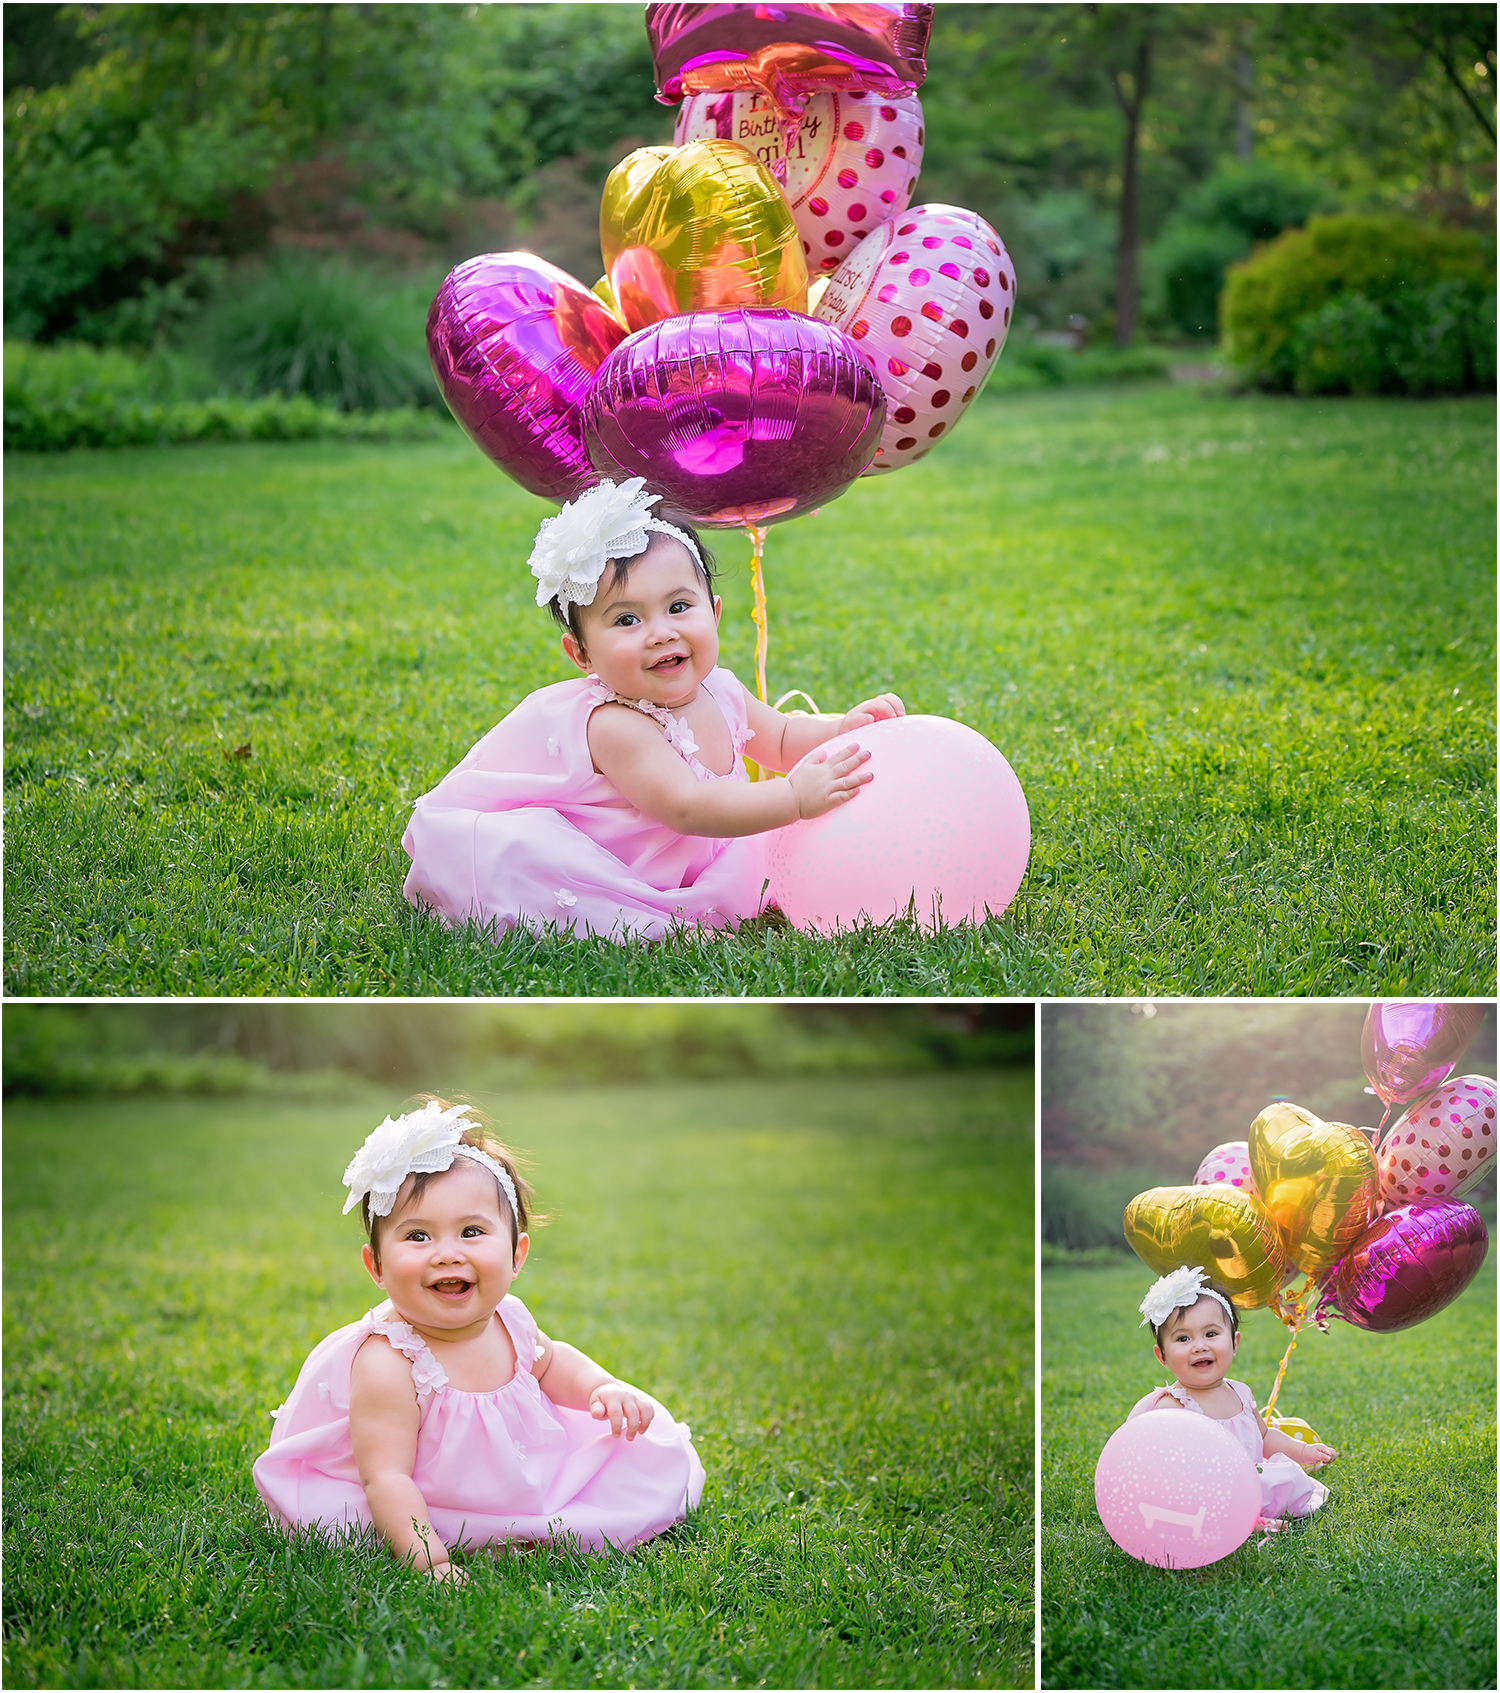 One Year Old Portrait Session (Cake Smash)